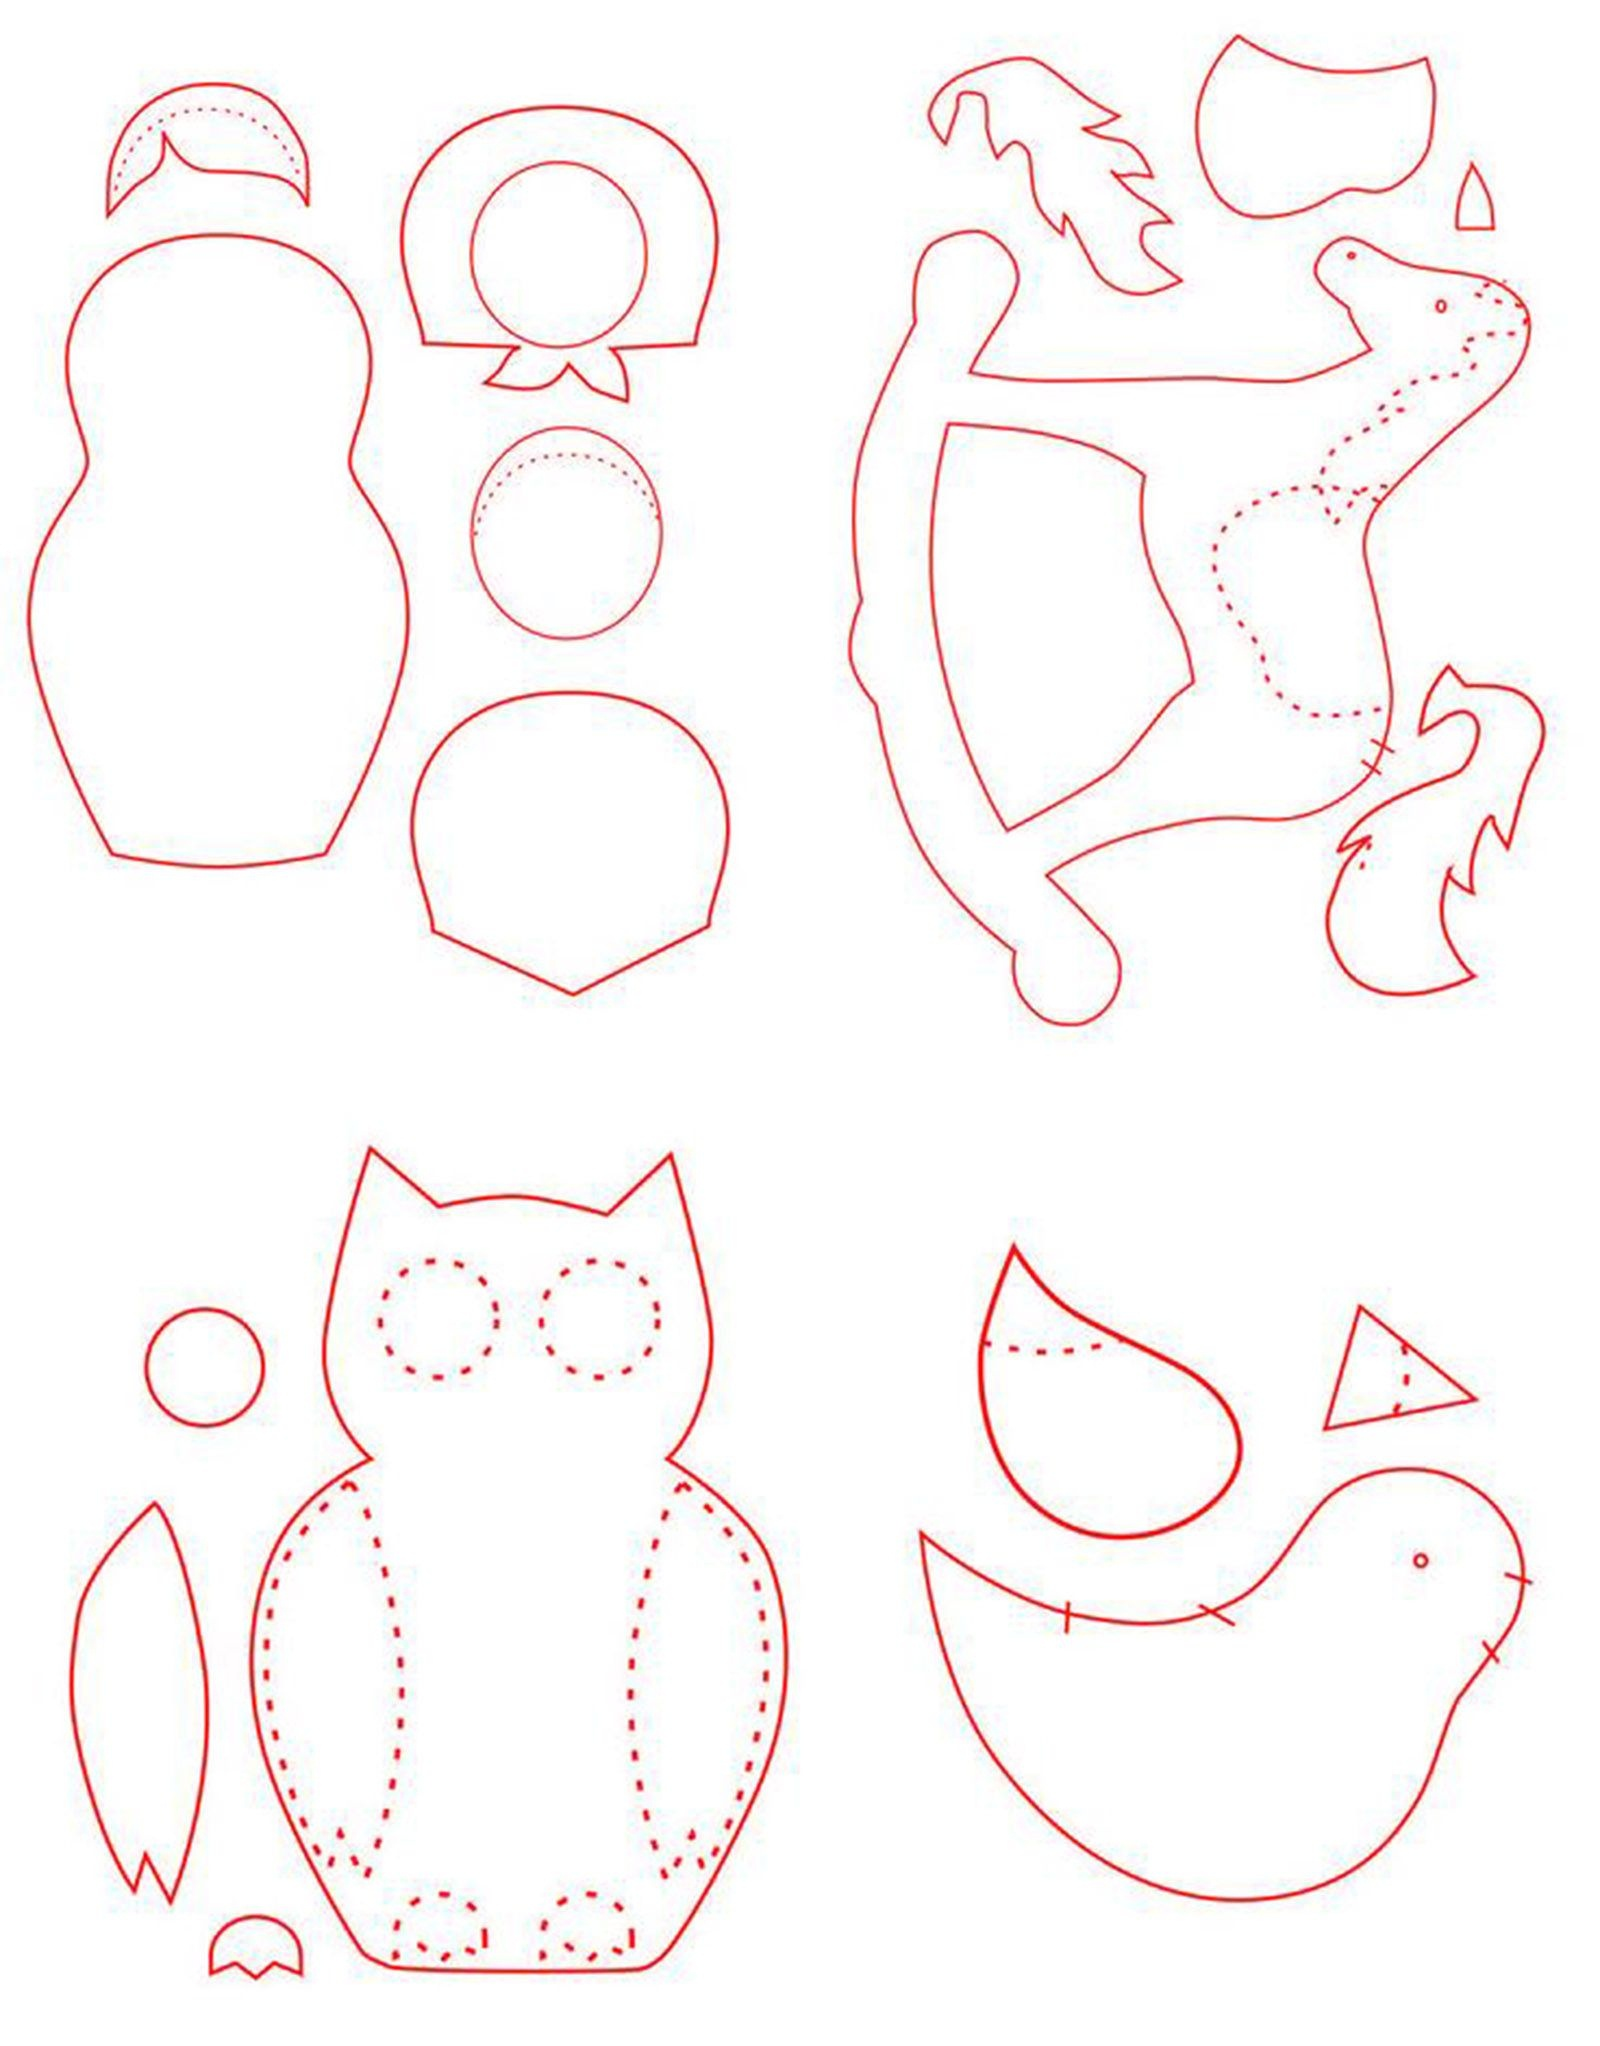 Free Patterns For Felt Ornaments | Vintage Christmas Craft Projects - Free Printable Felt Christmas Ornament Patterns